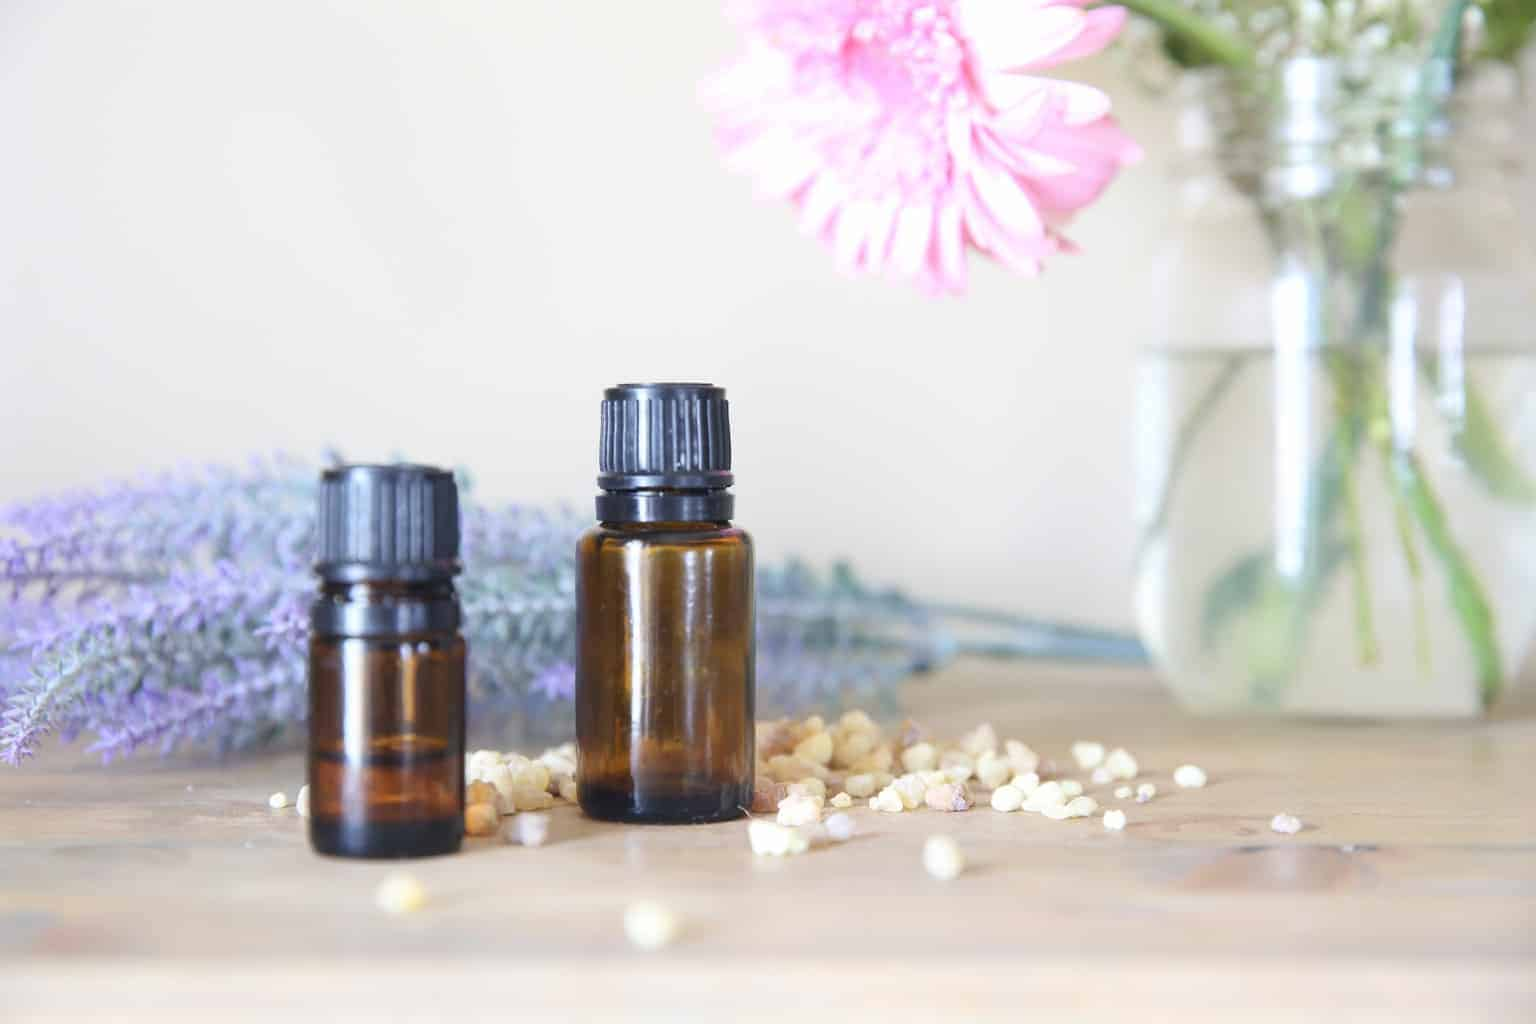 MY DAILY ESSENTIAL OIL ROUTINE ESSENTIAL OILS OUR OILY HOUSE NAURAL SOLUTIONS